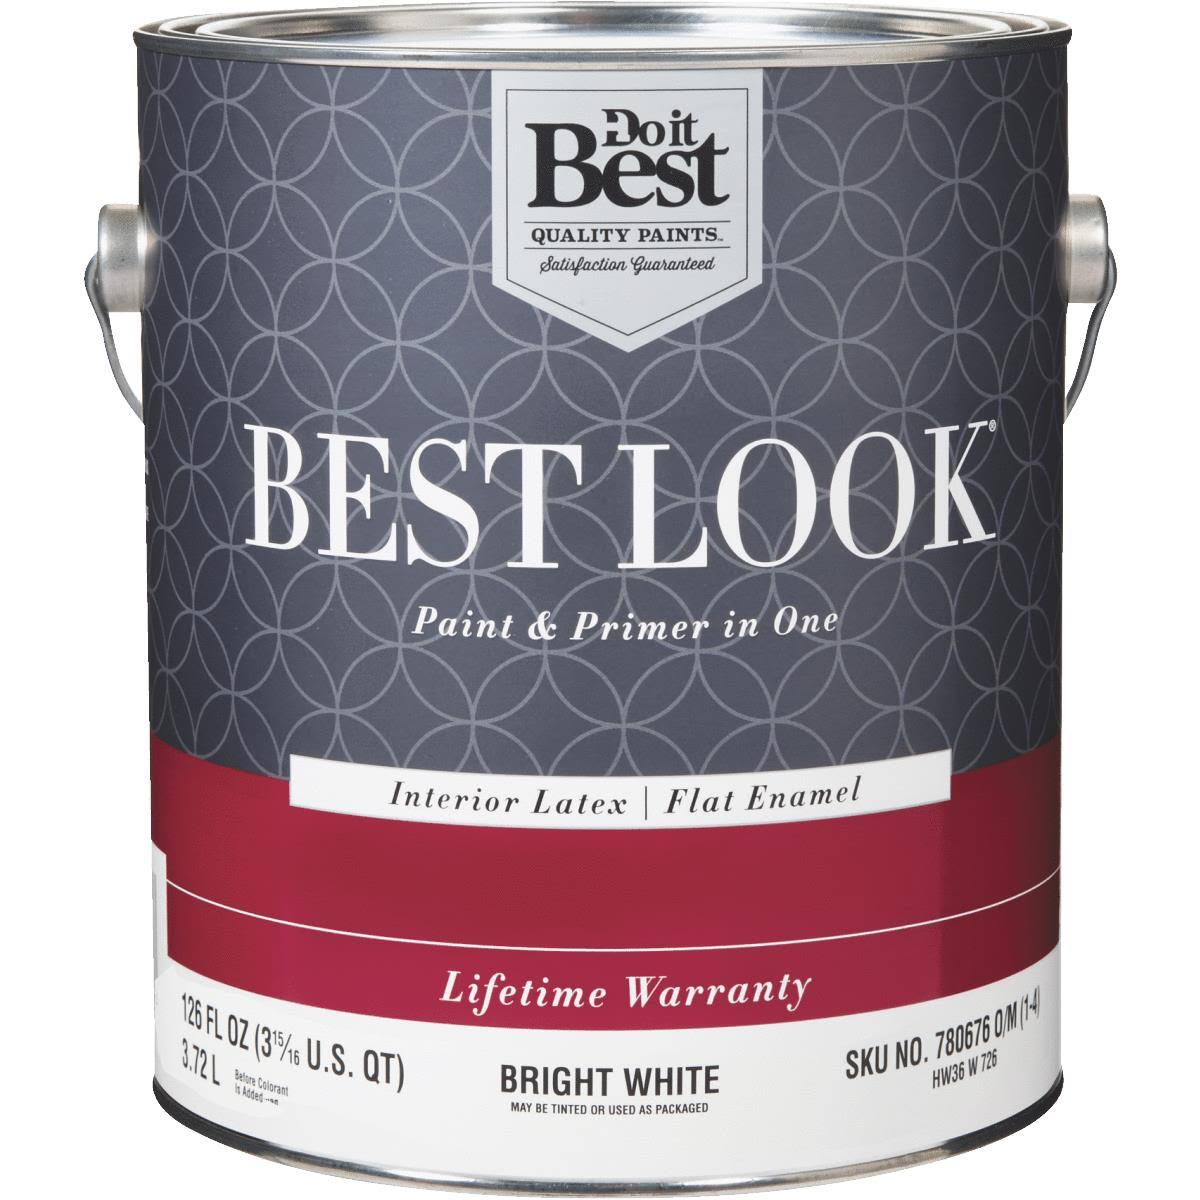 Do it Best Best Look Latex Paint & Primer In One Flat Enamel Interior Wall Paint - Bright White